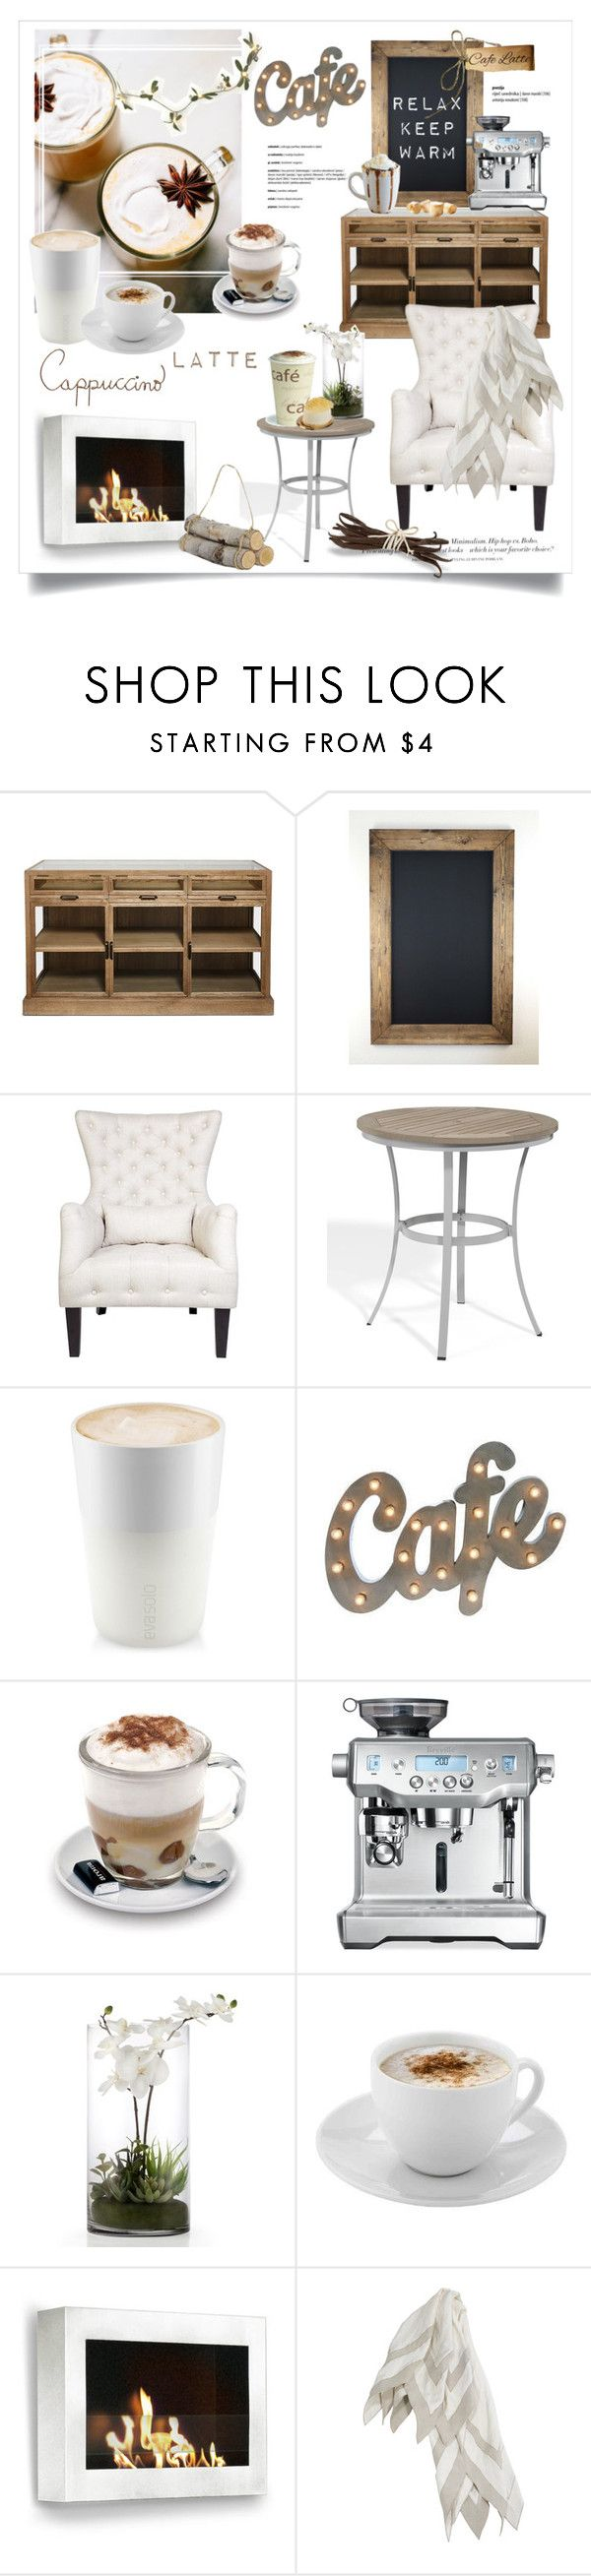 """""""Relaxed Cafe"""" by rever-de-paris ❤ liked on Polyvore featuring interior, interiors, interior design, home, home decor, interior decorating, Cafe Lighting, Oxford Garden, Eva Solo and Aroma"""